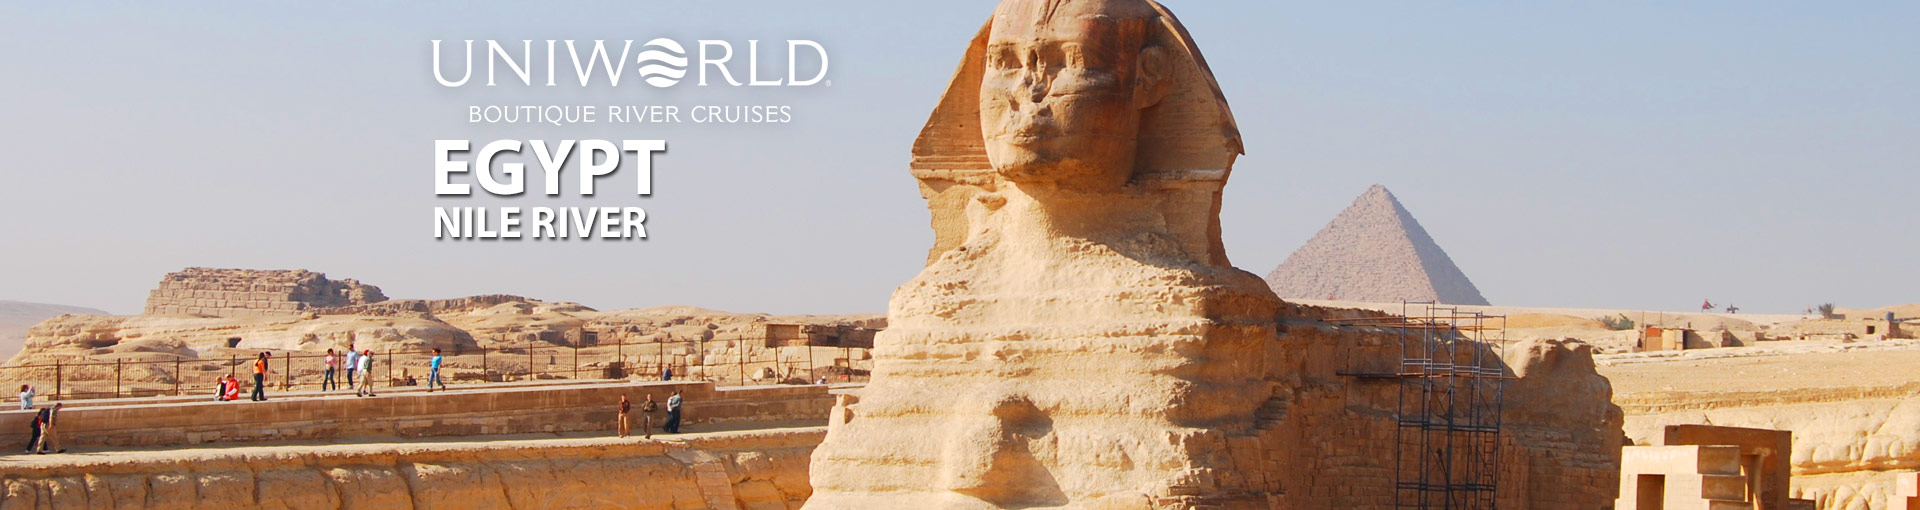 Uniworld River Cruises along Egypt's Nile River